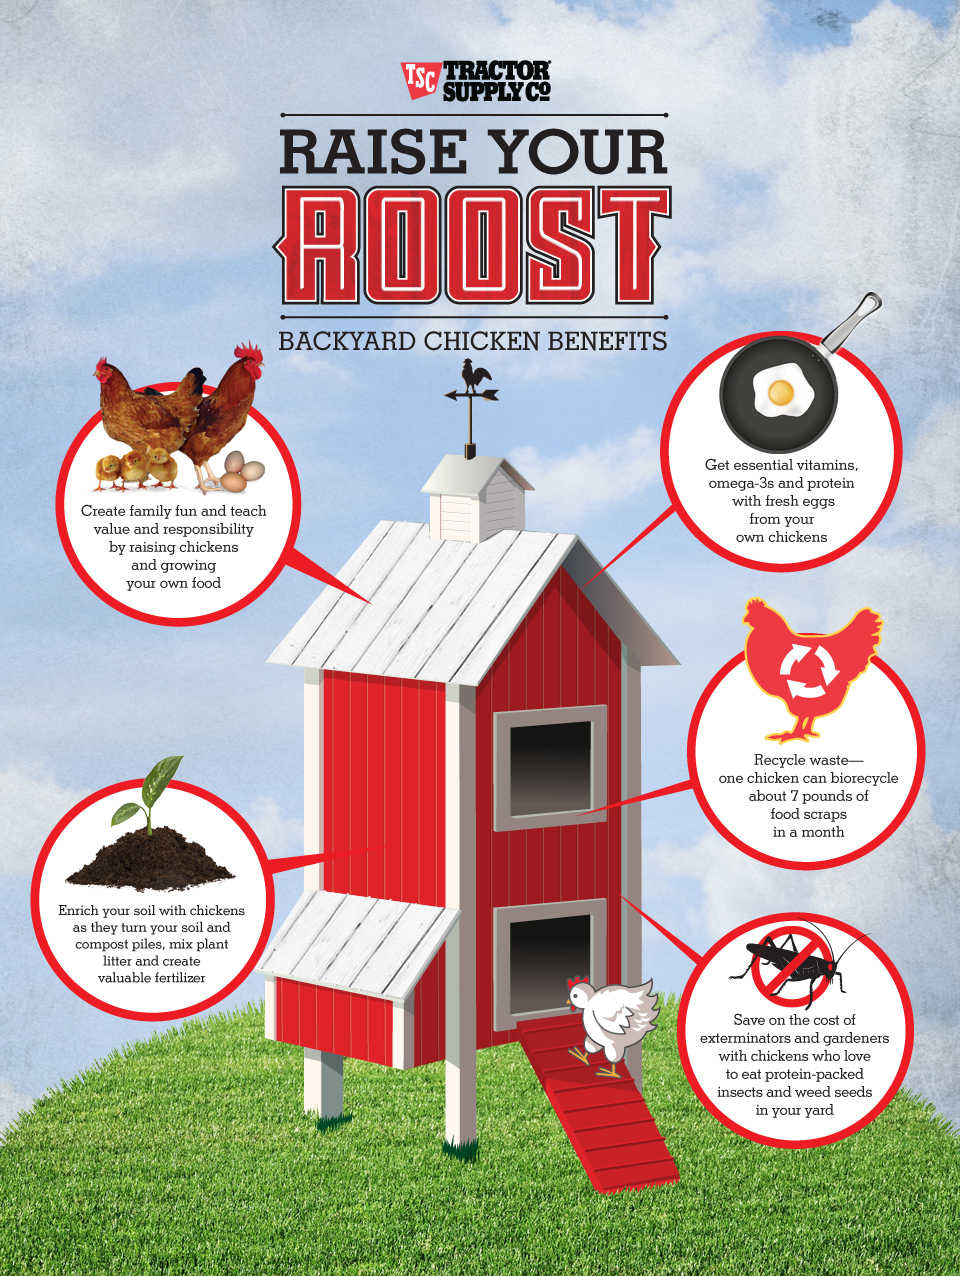 Raising chickens is fun for your family and beneficial for your yard and garden. (image: Business Wire)